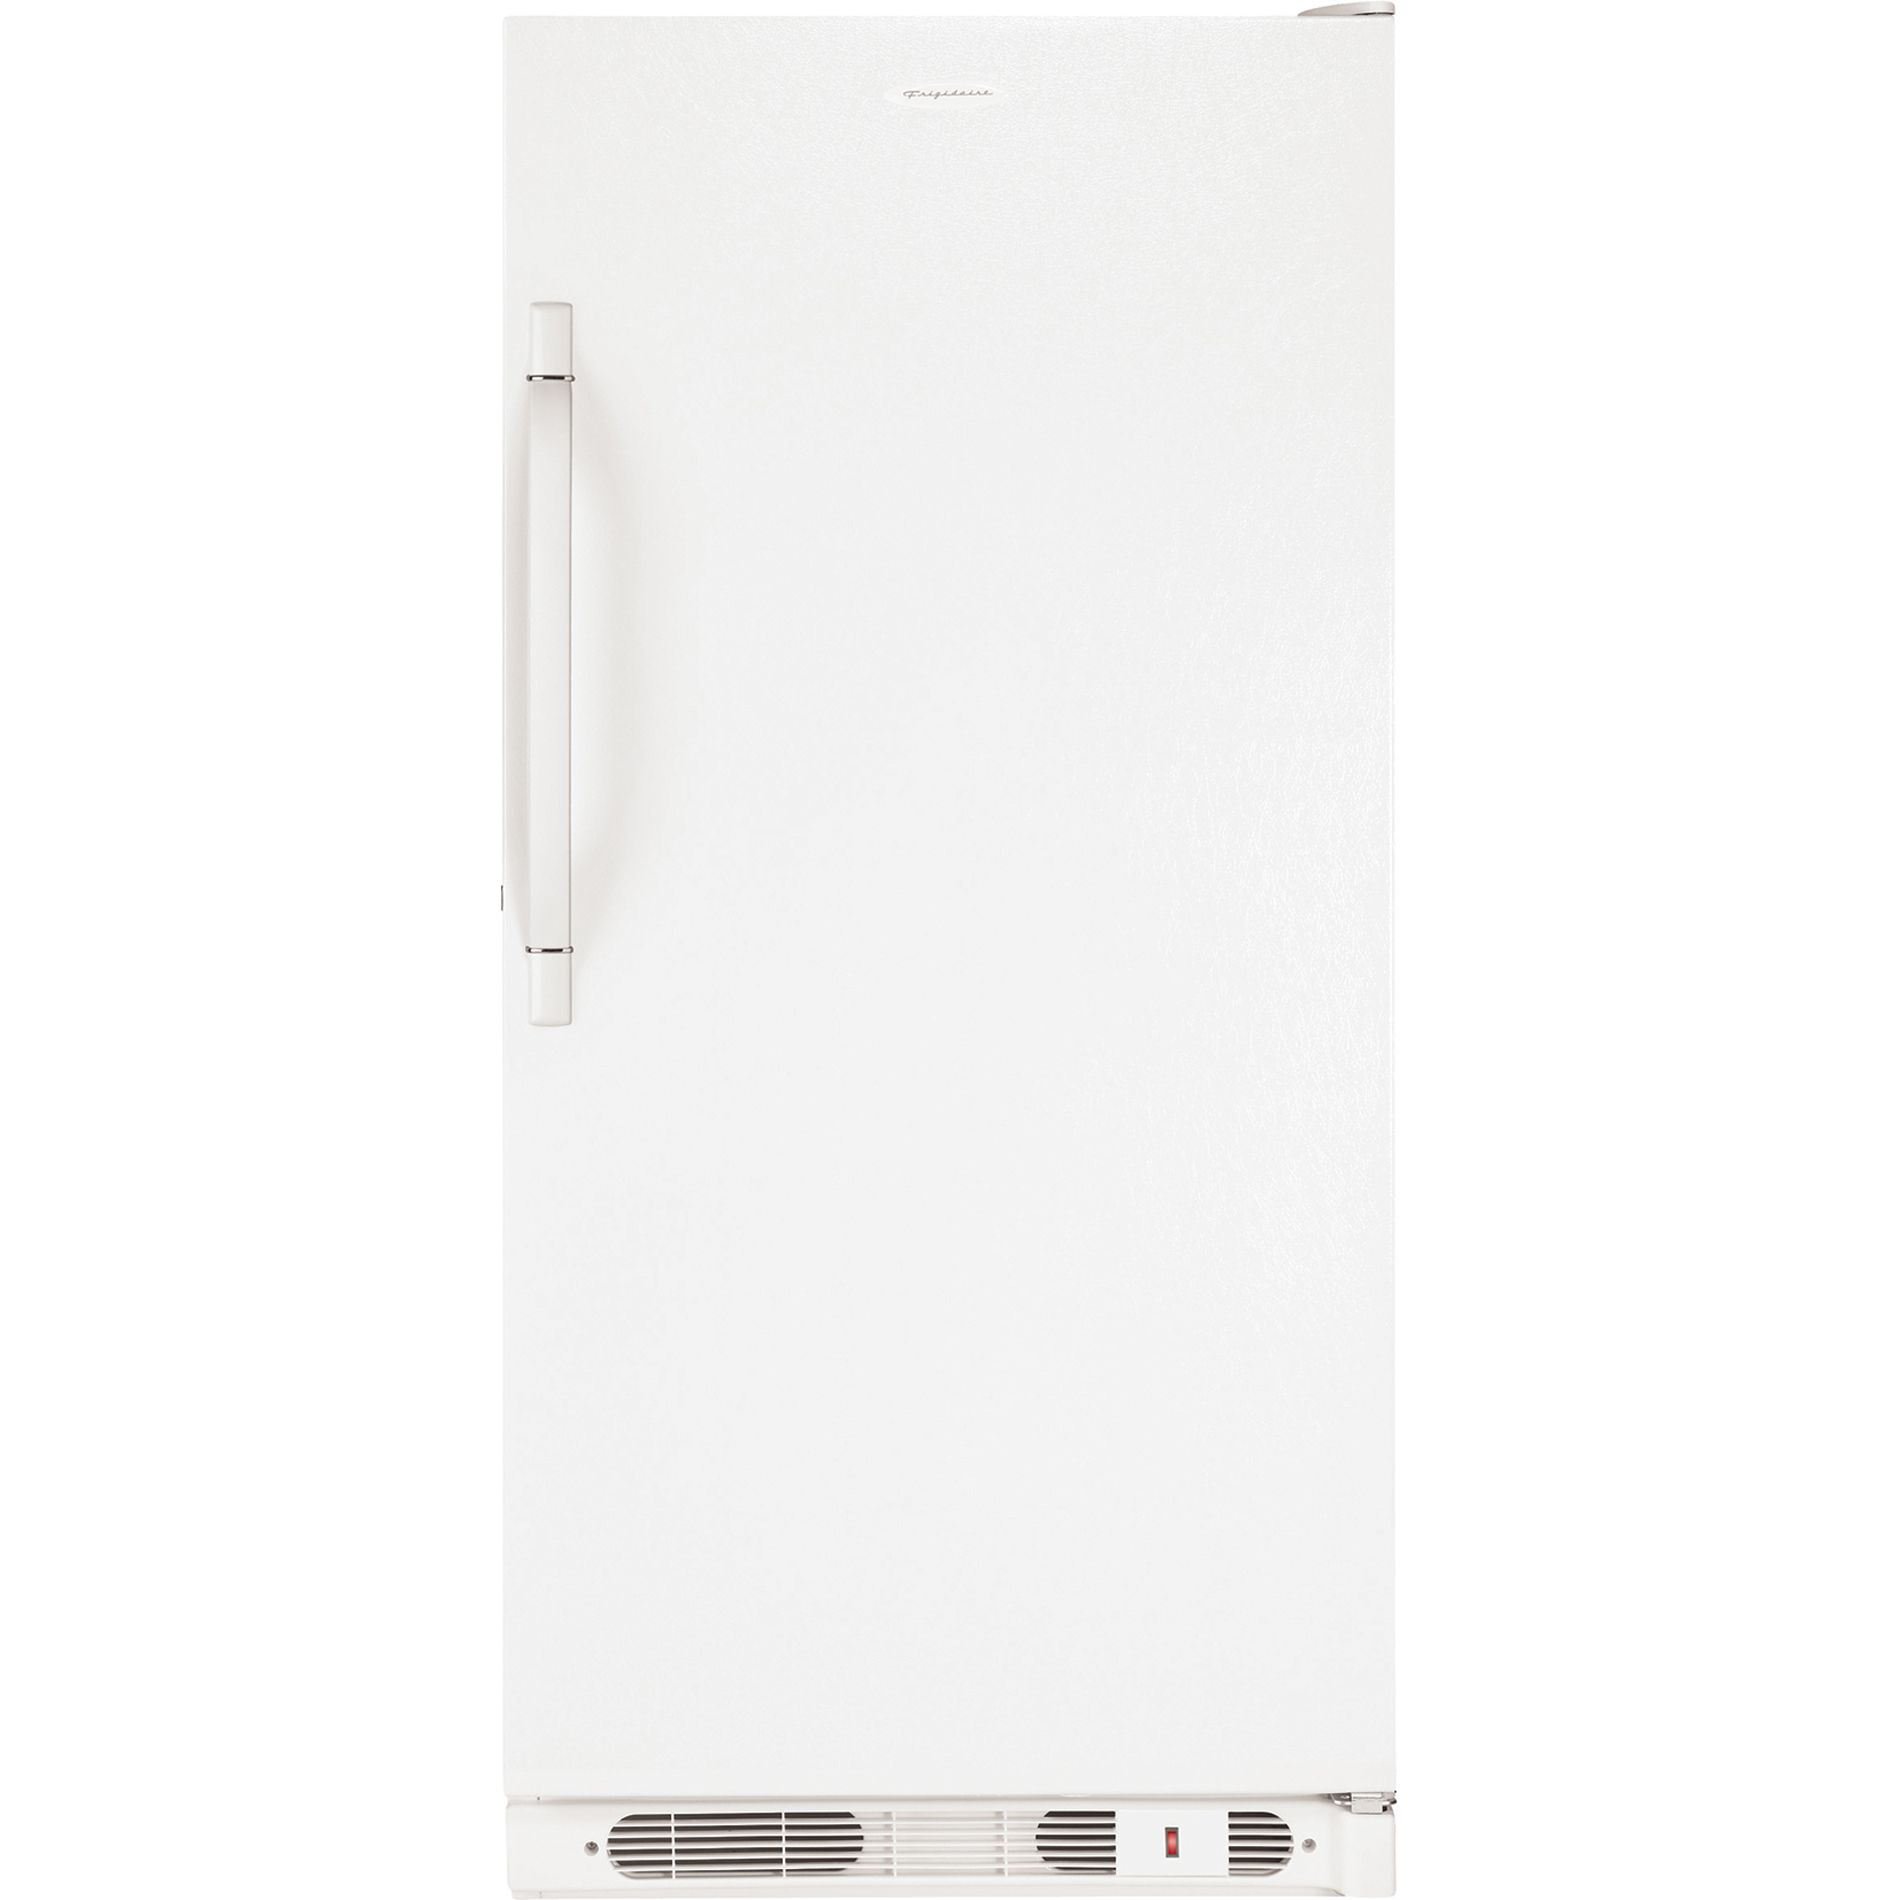 14.1 cu. ft. Upright Freezer